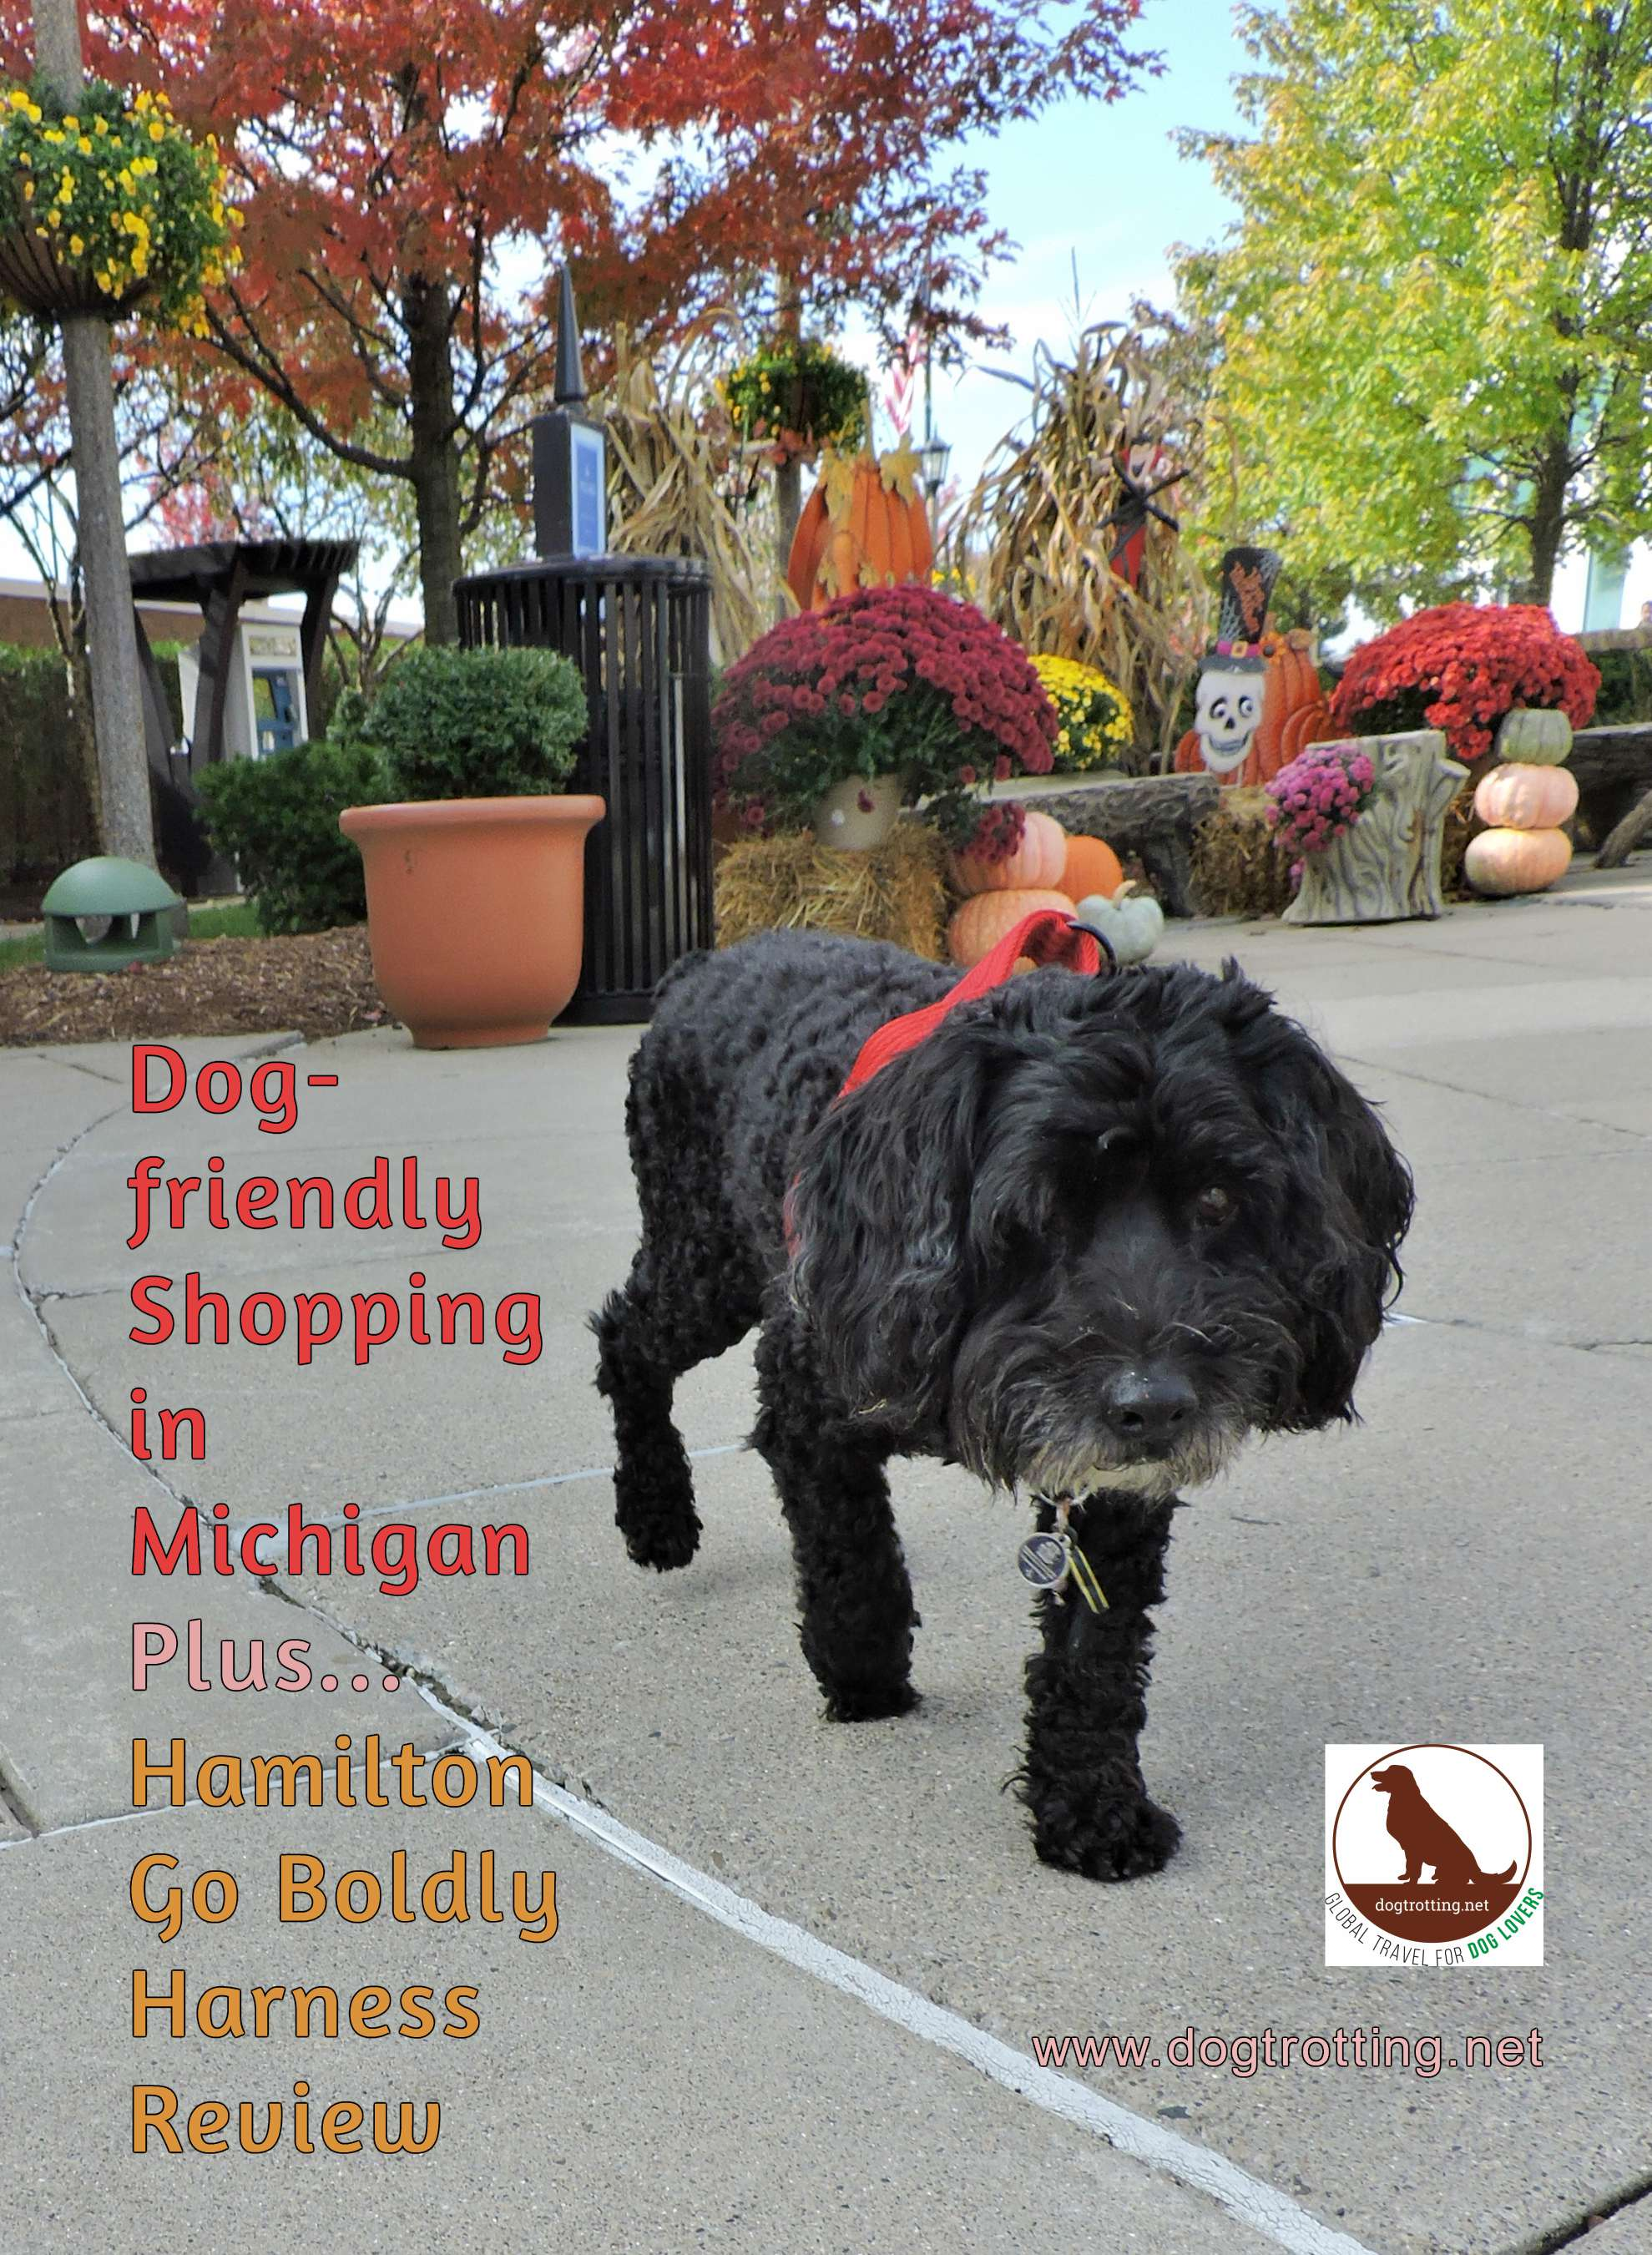 Travel: Dog-friendly Michigan Malls and Go Boldly Harness review